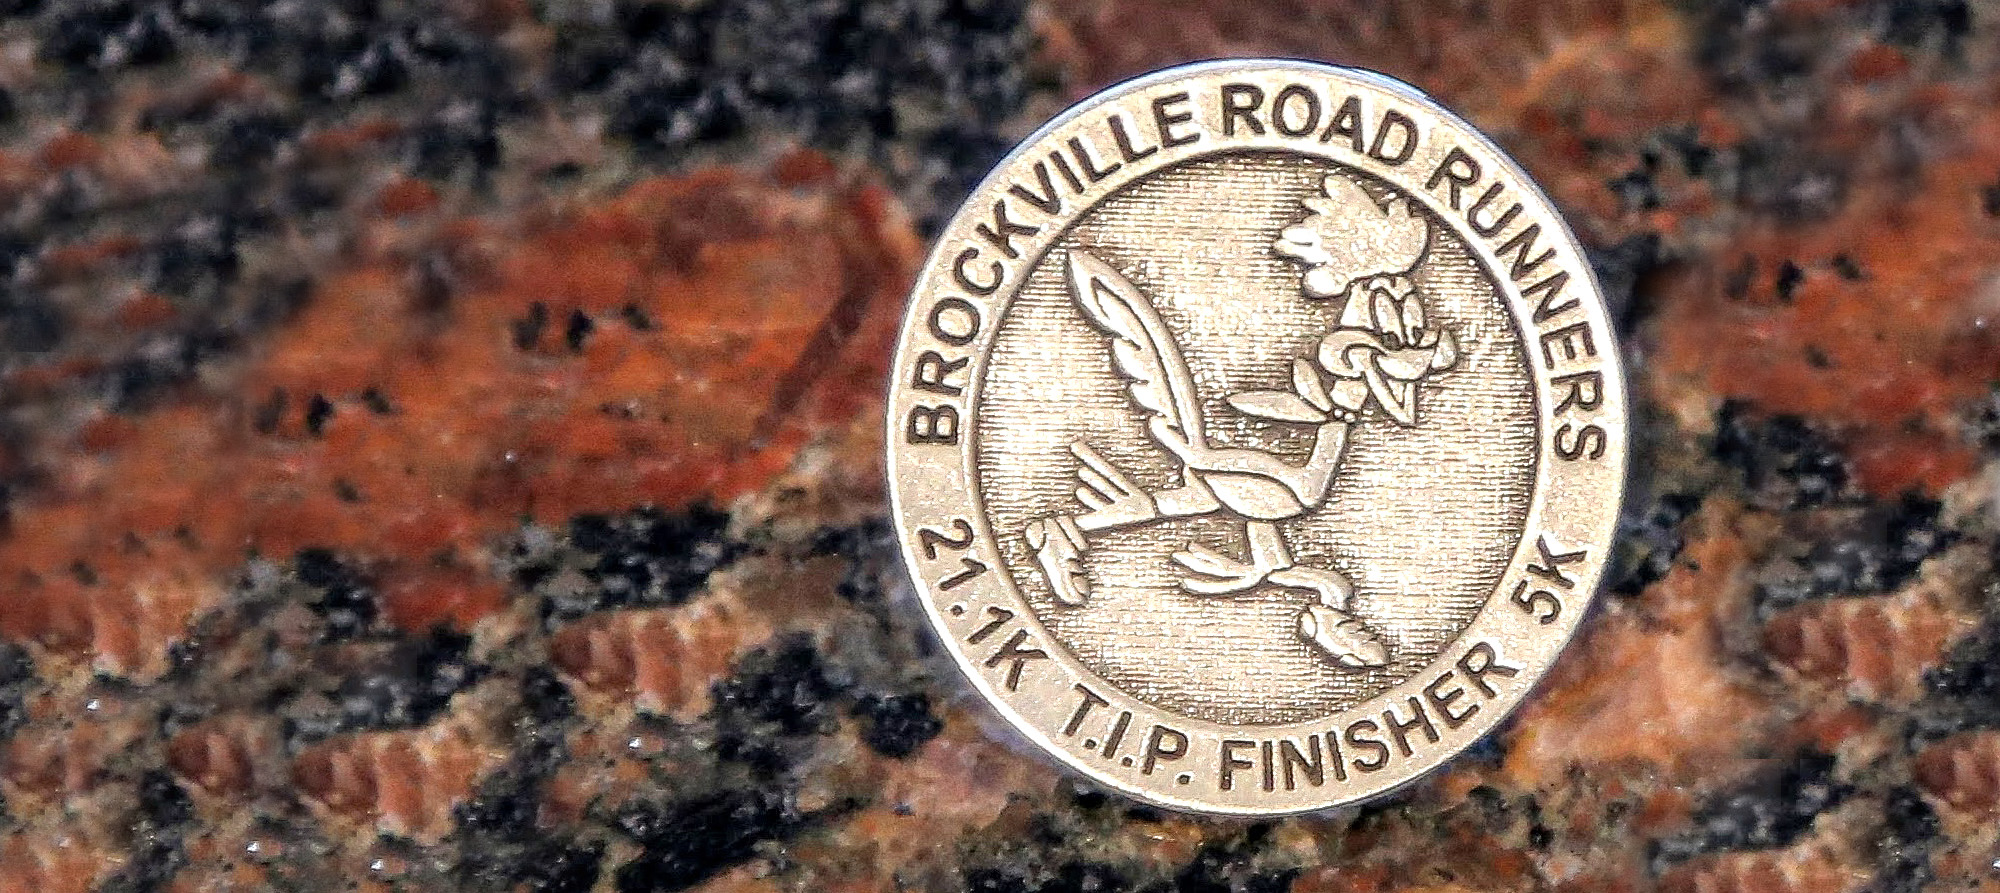 BrockvilleHalf5K-Medal